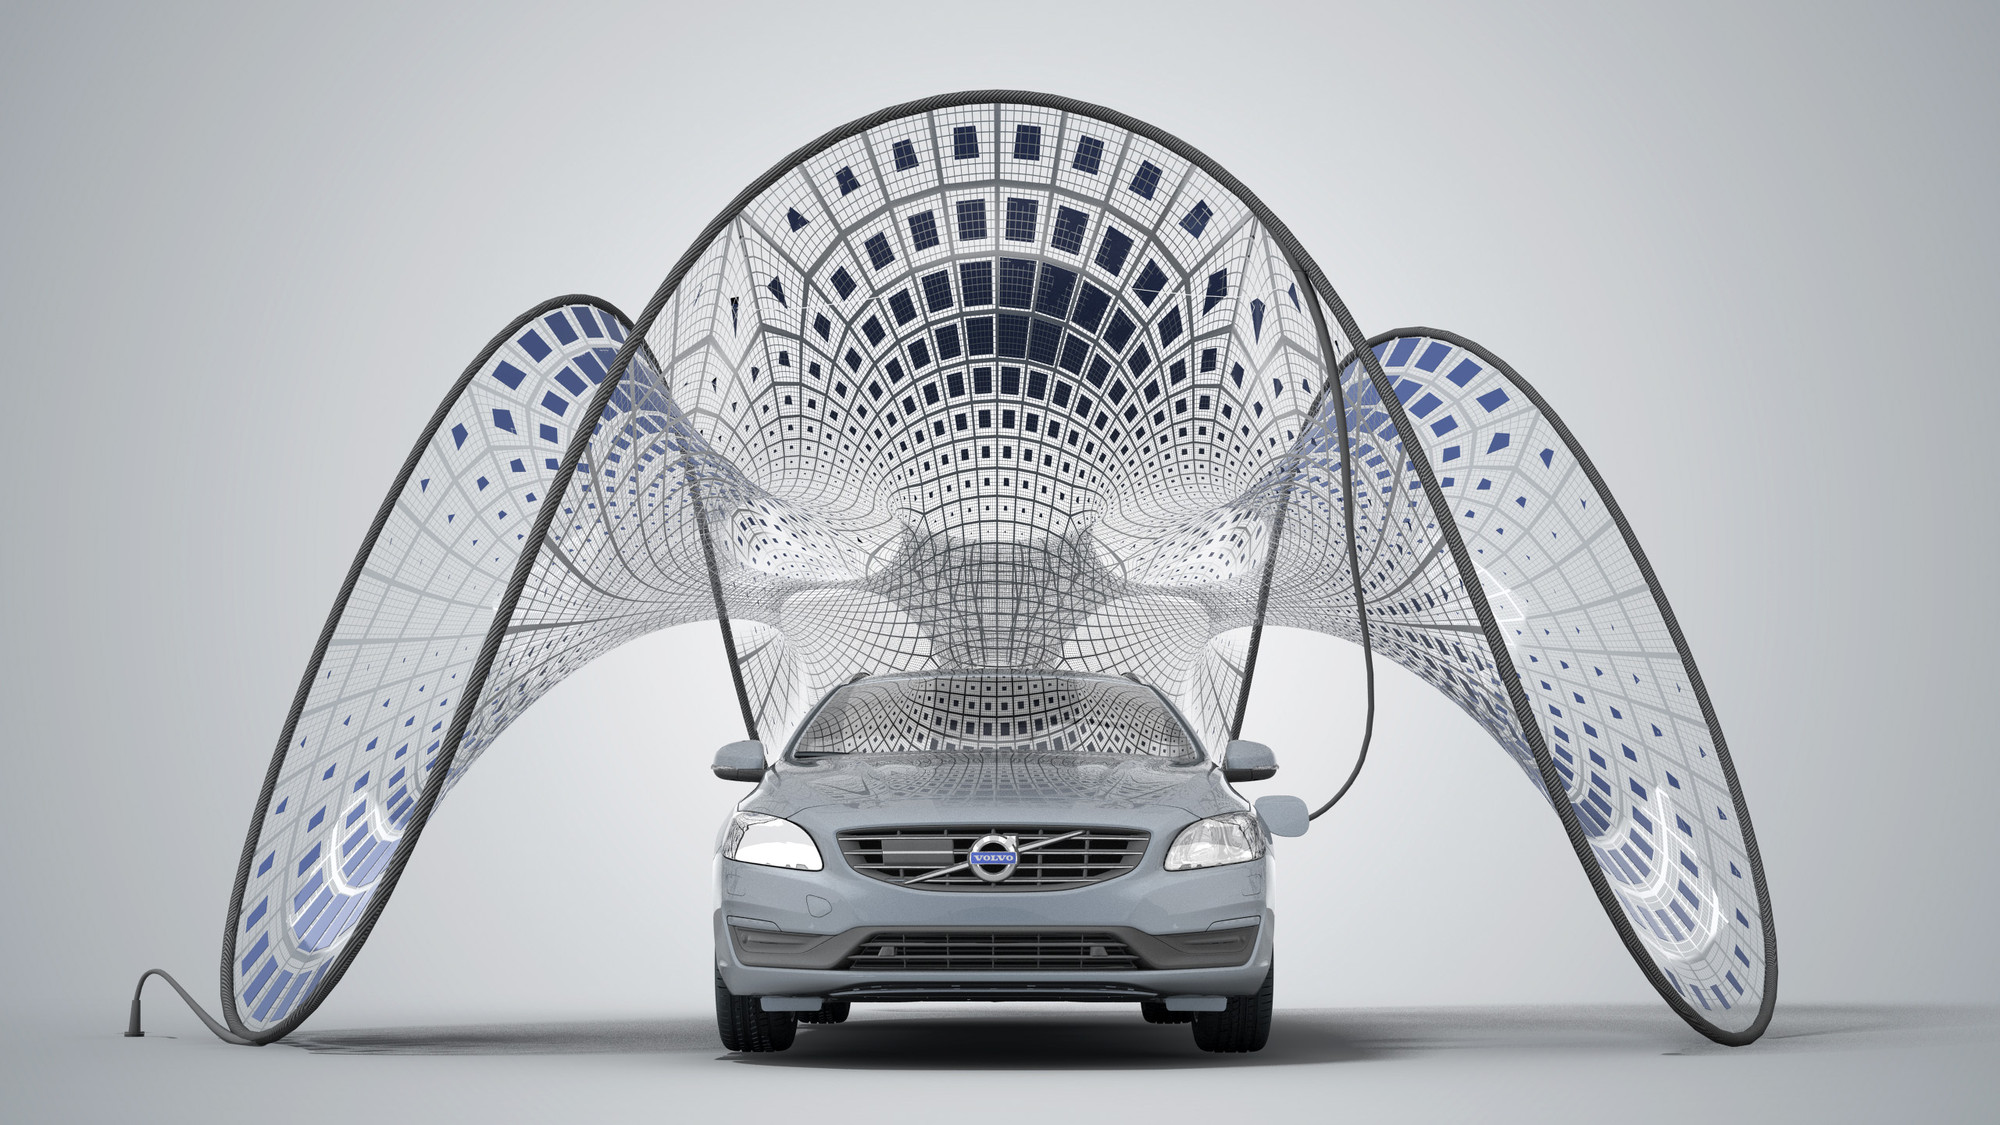 Synthesis Design + Architecture Wins Competition to Design Pavilion for Volvo, Courtesy of Synthesis Design + Architecture